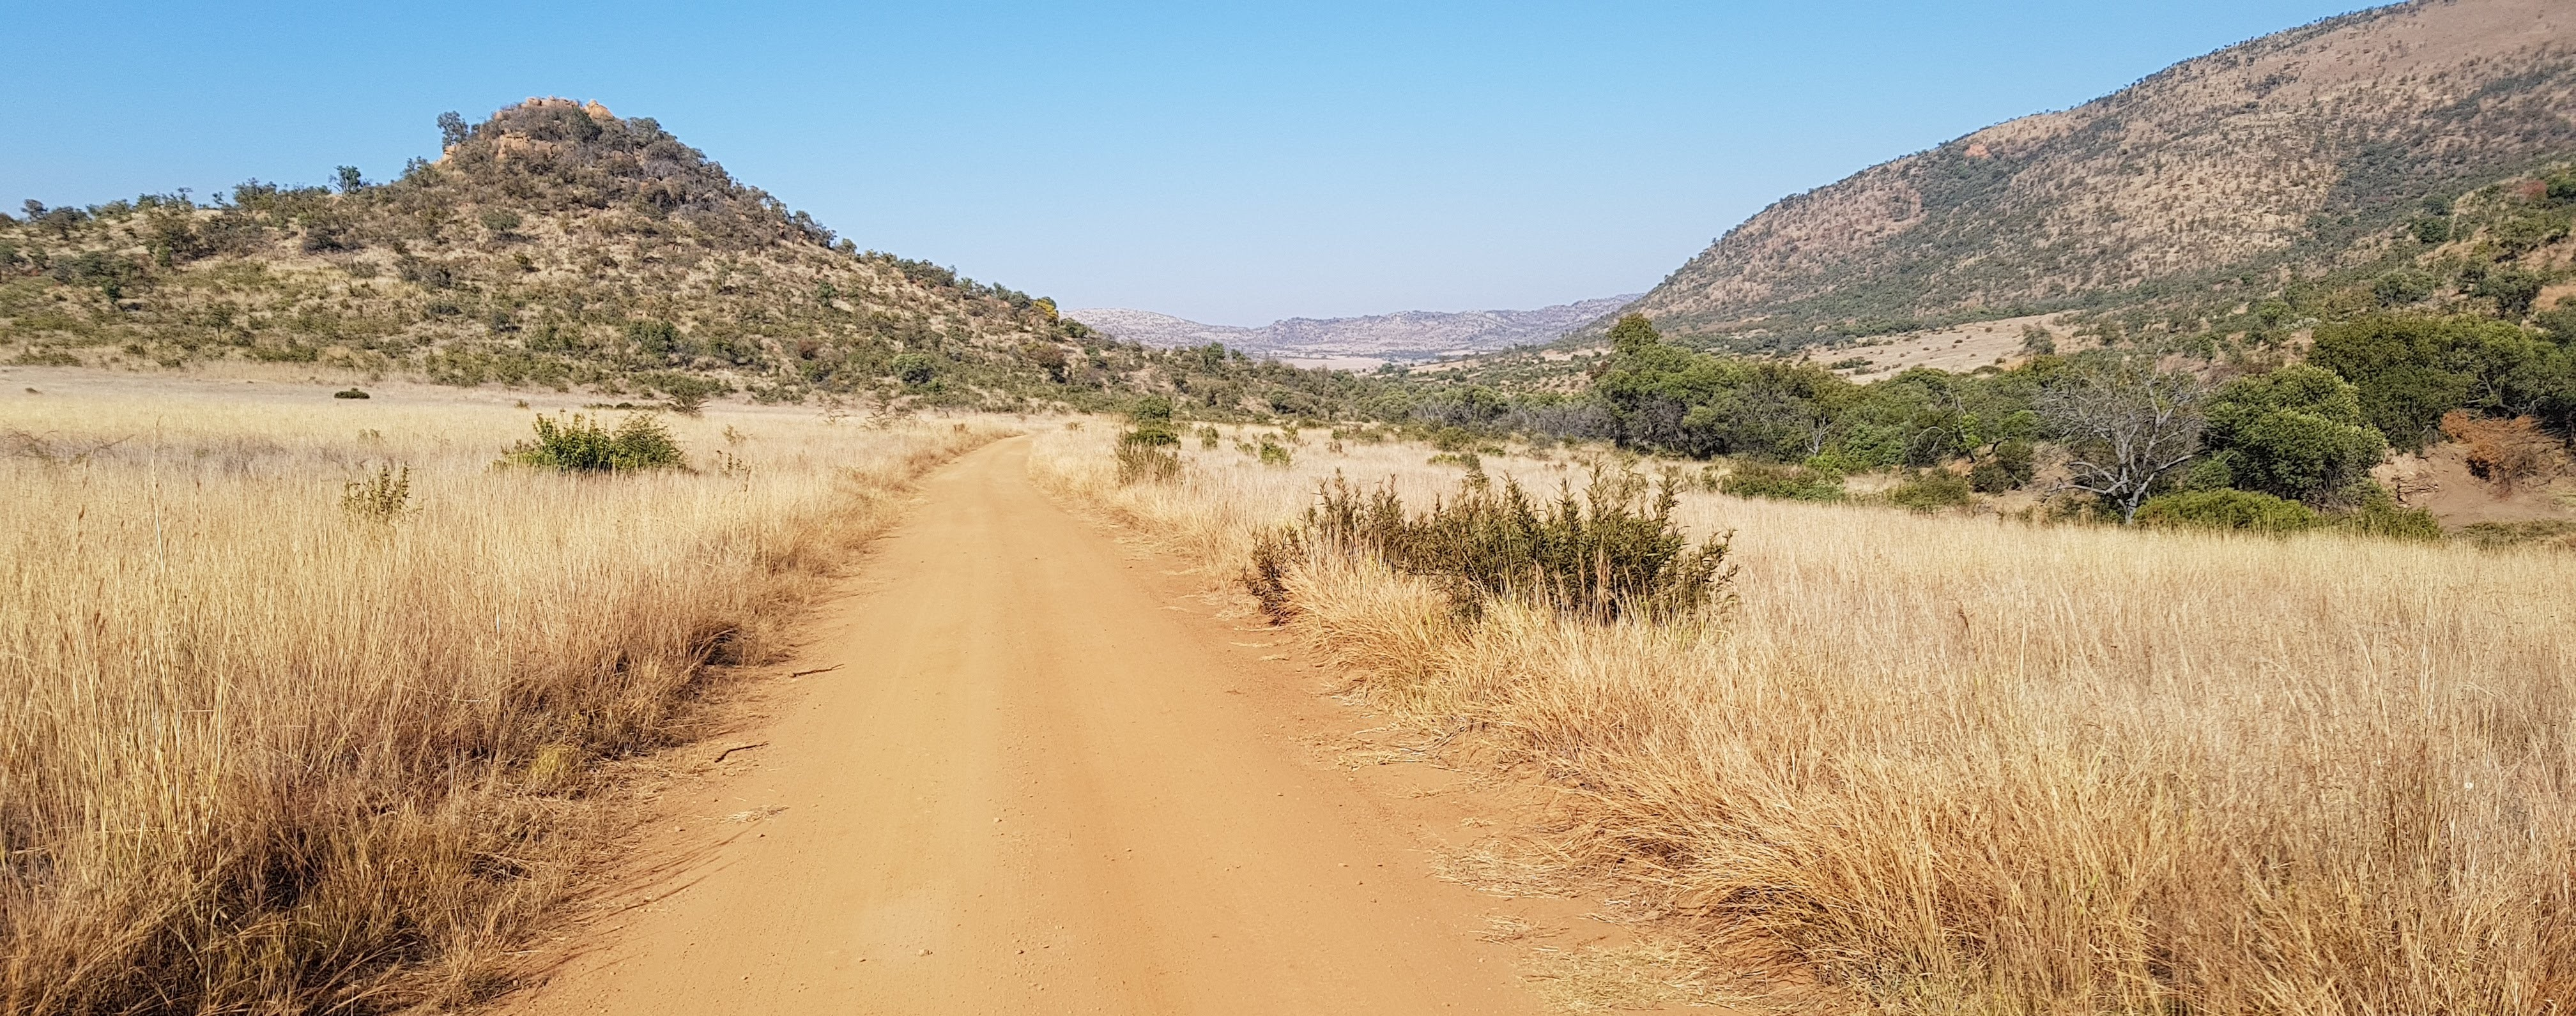 Self drive to the Pilanesberg Game Reserve